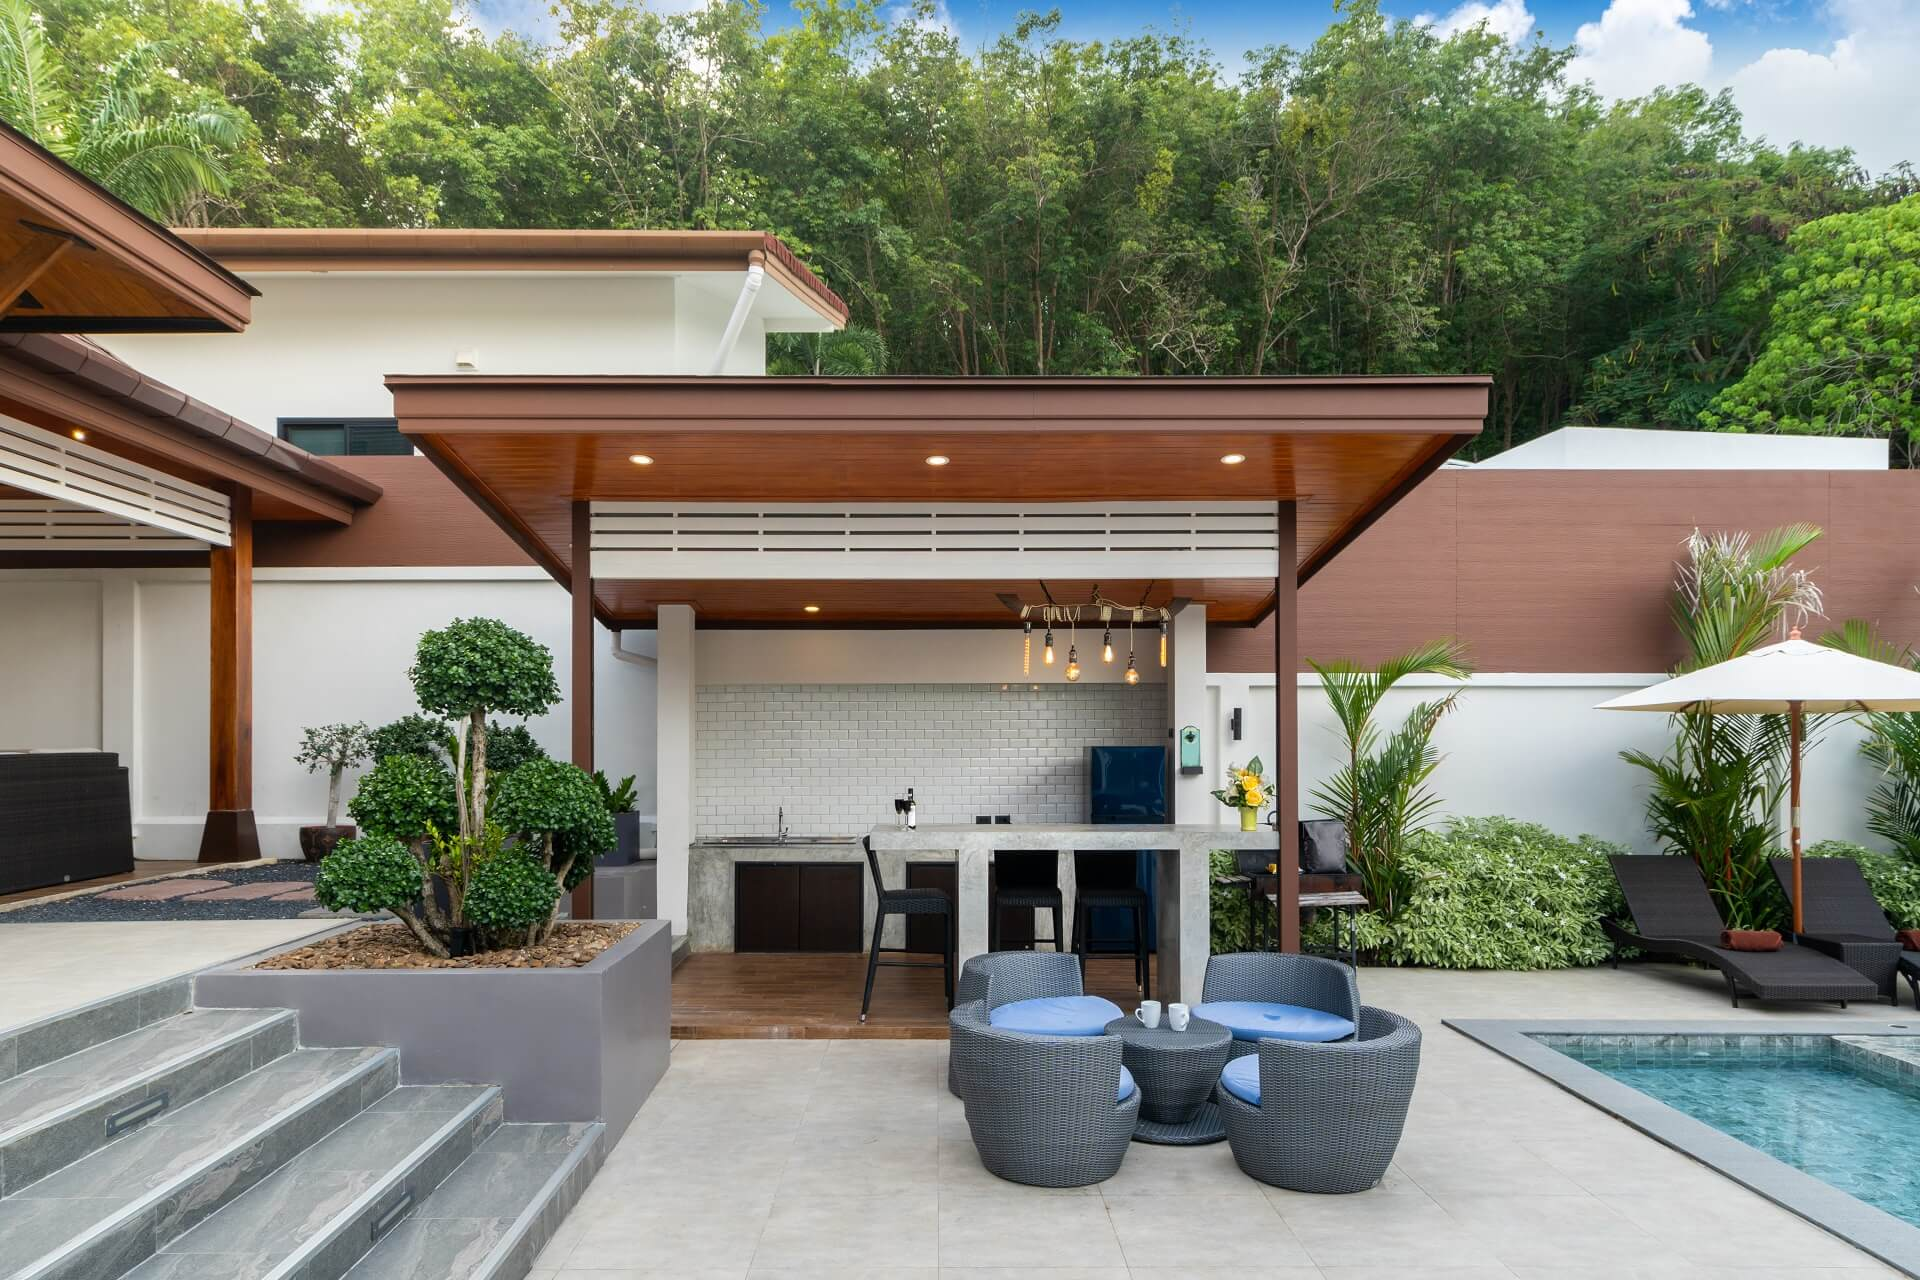 Outdoor living trends for 2021